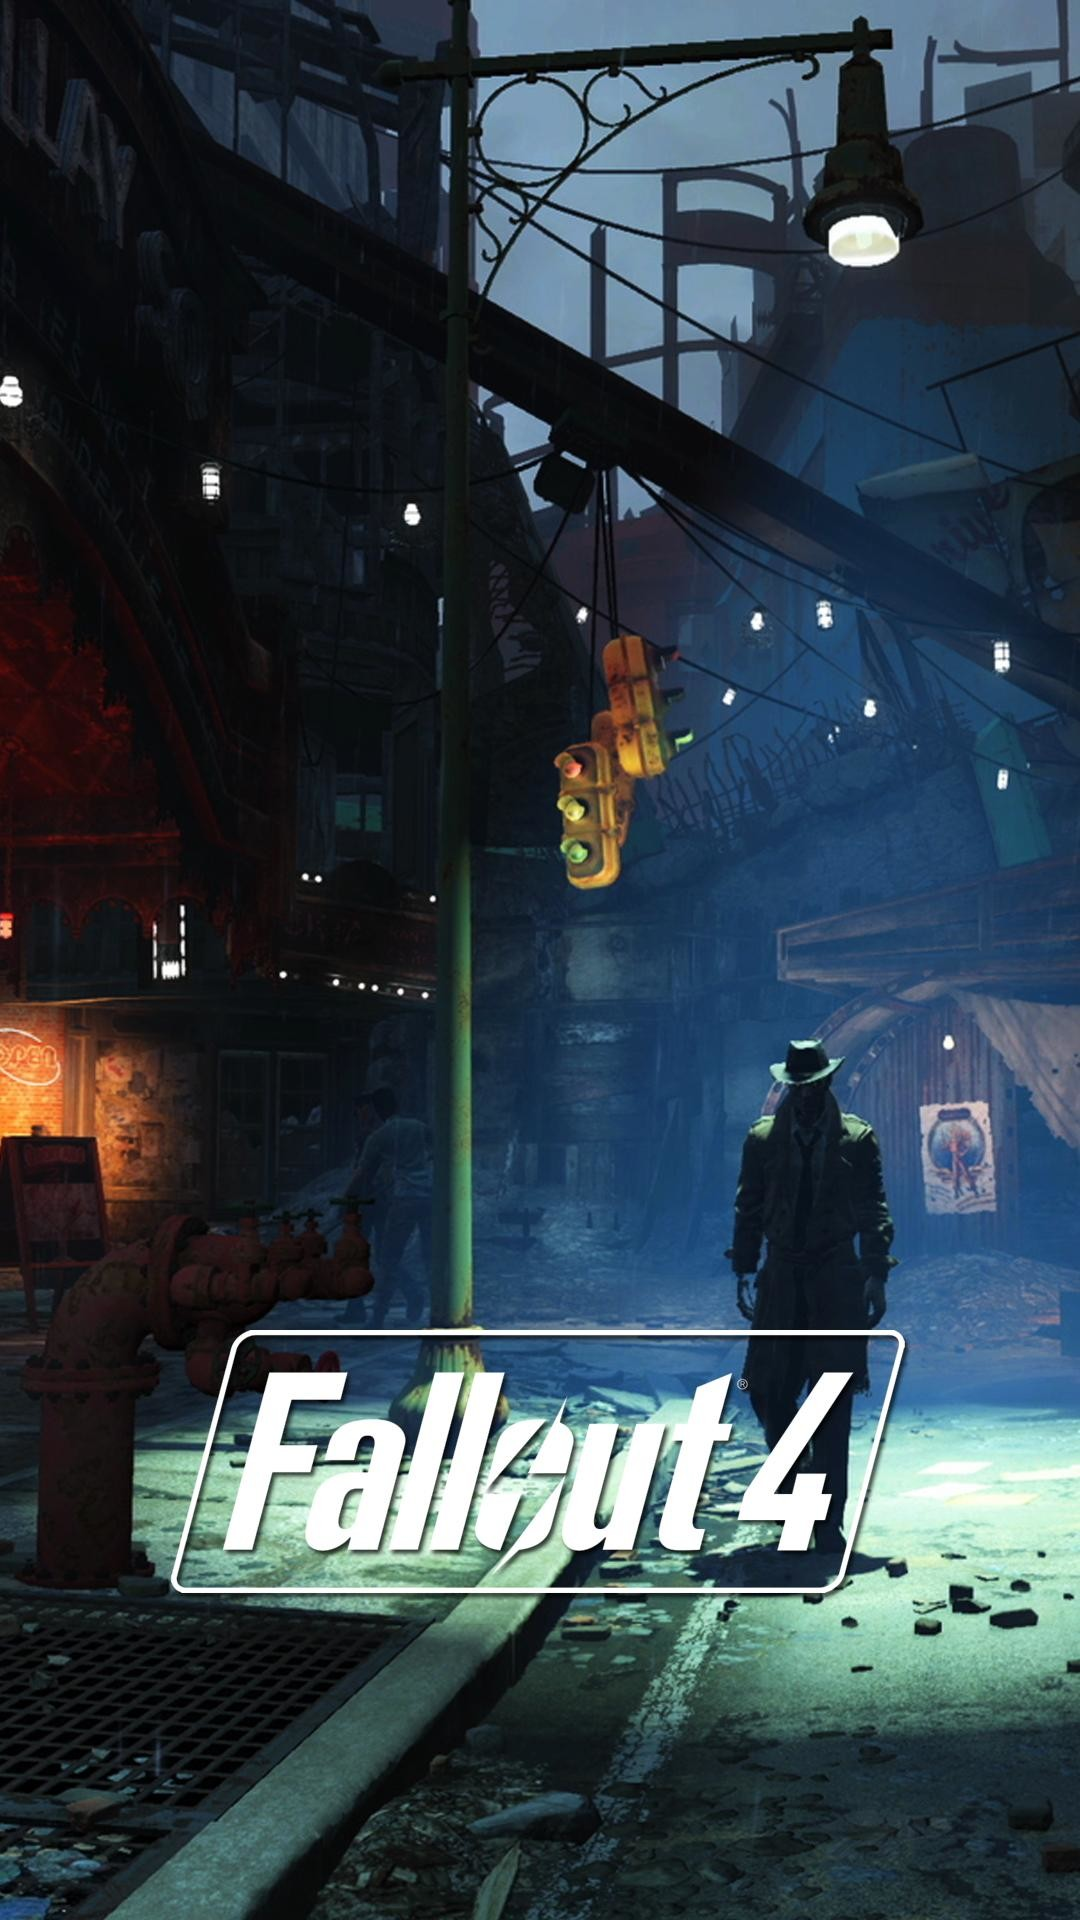 Fallout 4 LS BGs